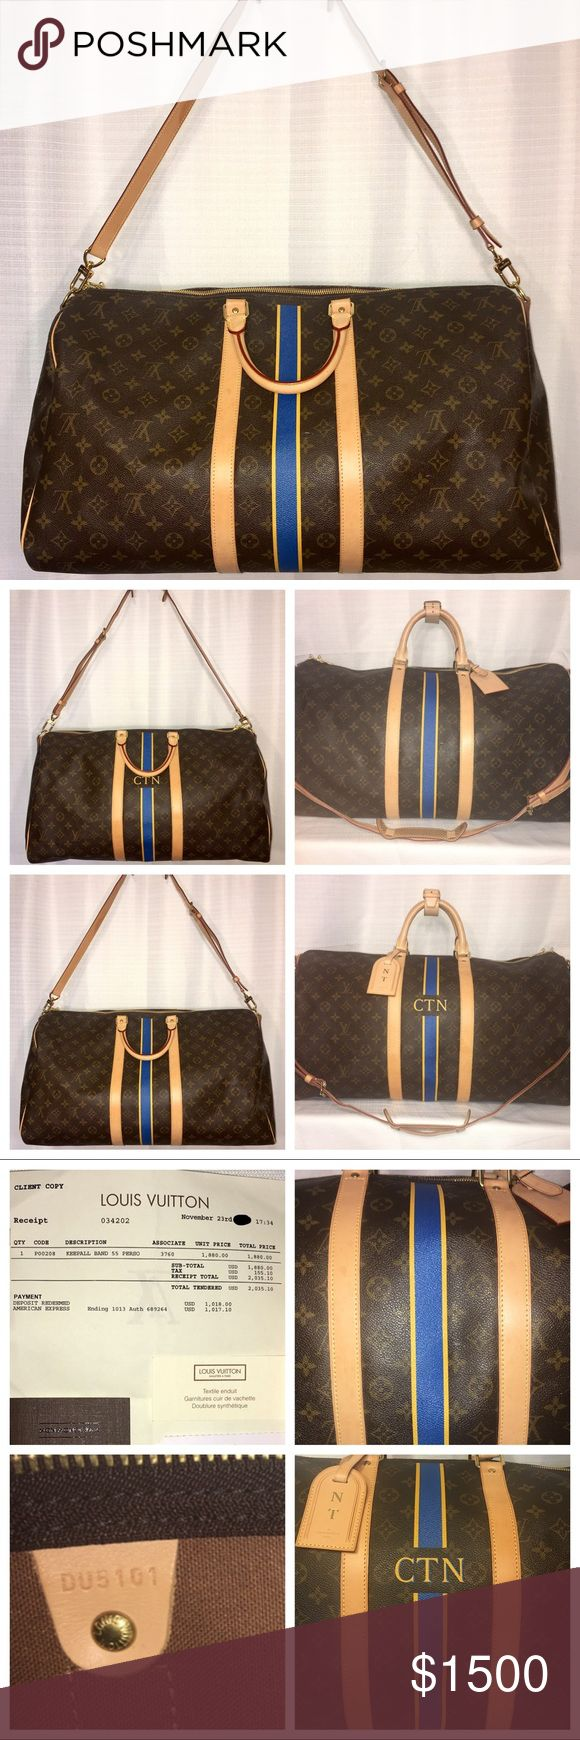 """Louis Vuitton KEEPALL BANDOULIÈRE 55 Louis Vuitton KEEPALL BANDOULIÈRE 55. Condition: 9.25/10. Cabin size- L: 21.7 x H: 12.2 x W: 9.4"""" Photos are main part of description. Please review in detail and ask questions as needed. - includes original receipt/tags for $2,035 - Leather strap & handles - new & unopened lock & keys - Hot stamp CNT can be removed with receipt provided at any Louis Vuitton store - Includes all accessories shown.            NO TRADES. Offers only negotiated through OFFER…"""